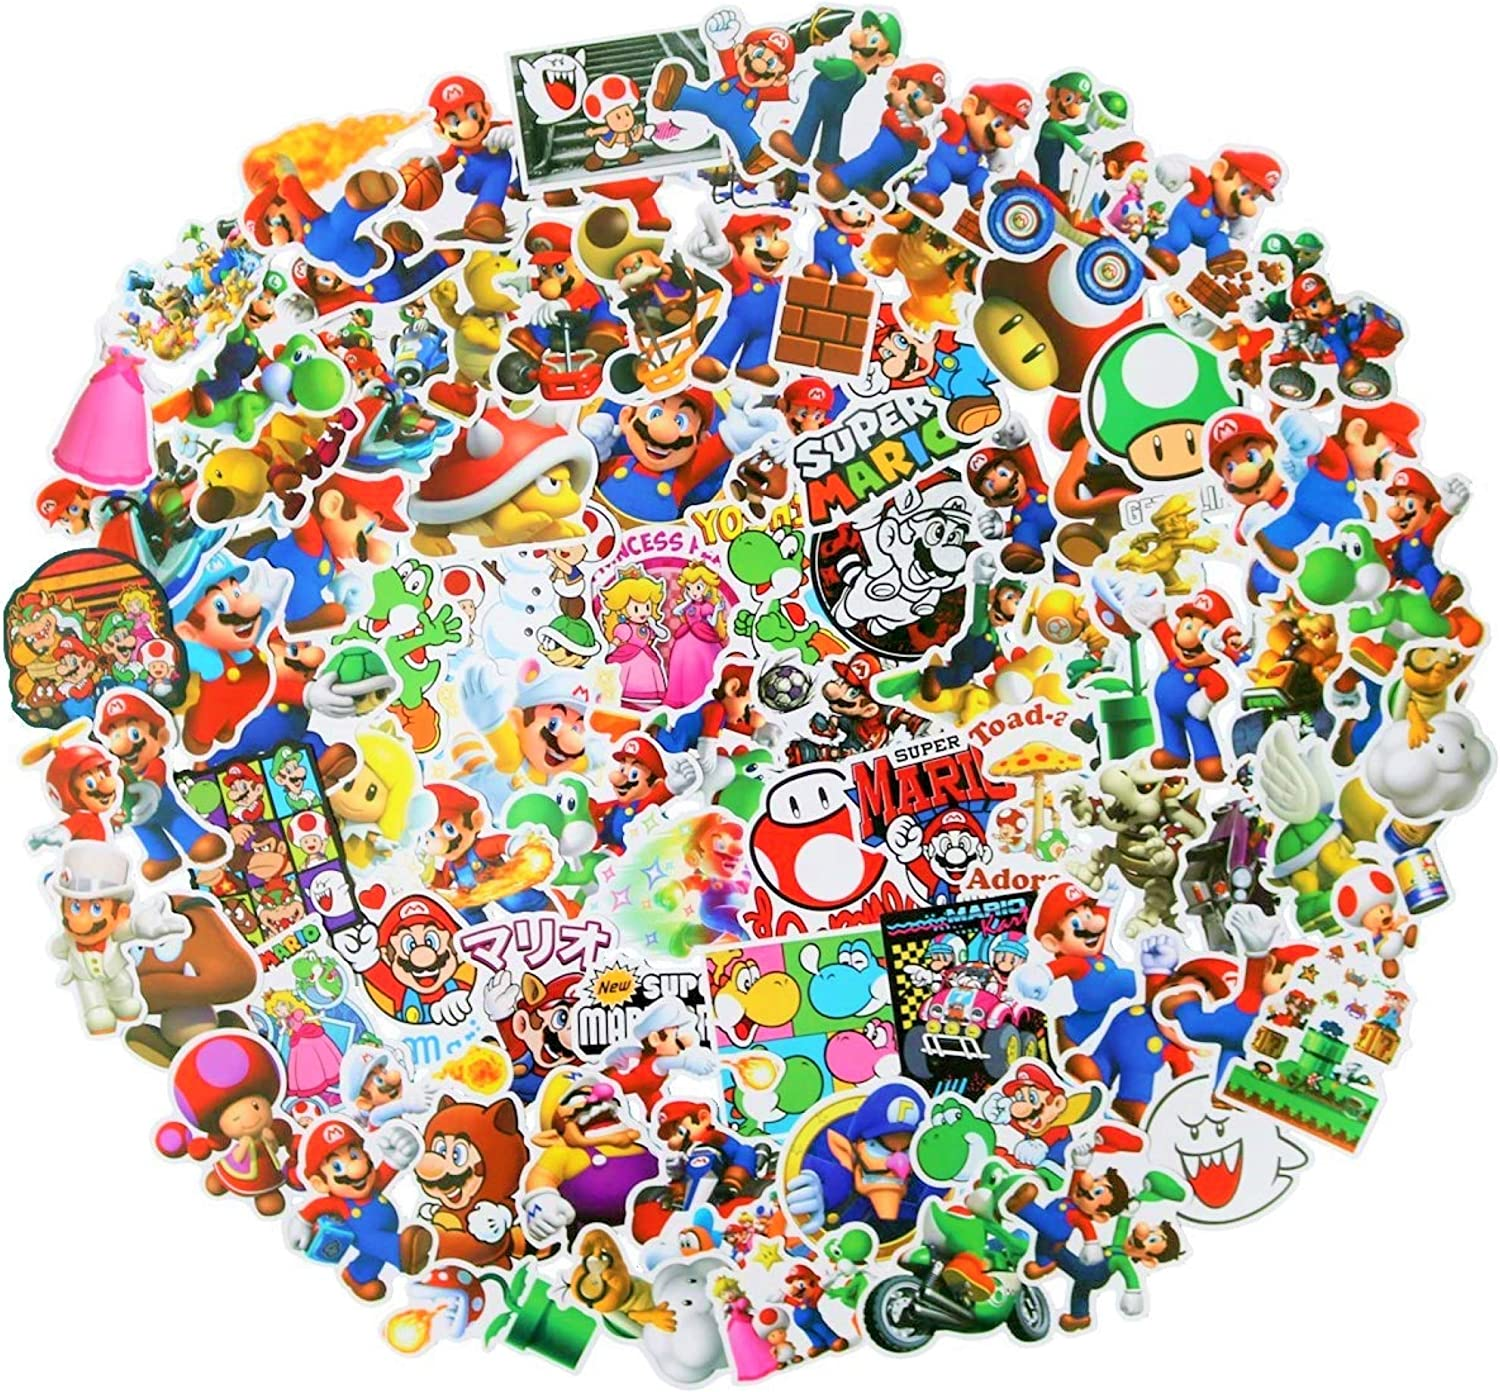 100pcs Super Mario Merchandise Stickers, Vinyl Sticker for Laptop Water Bottle Guitar Bike Car Motorcycle Bumper Luggage Skateboard Graffiti, Cute Decals, Best Gift for Kids,Children,Teen